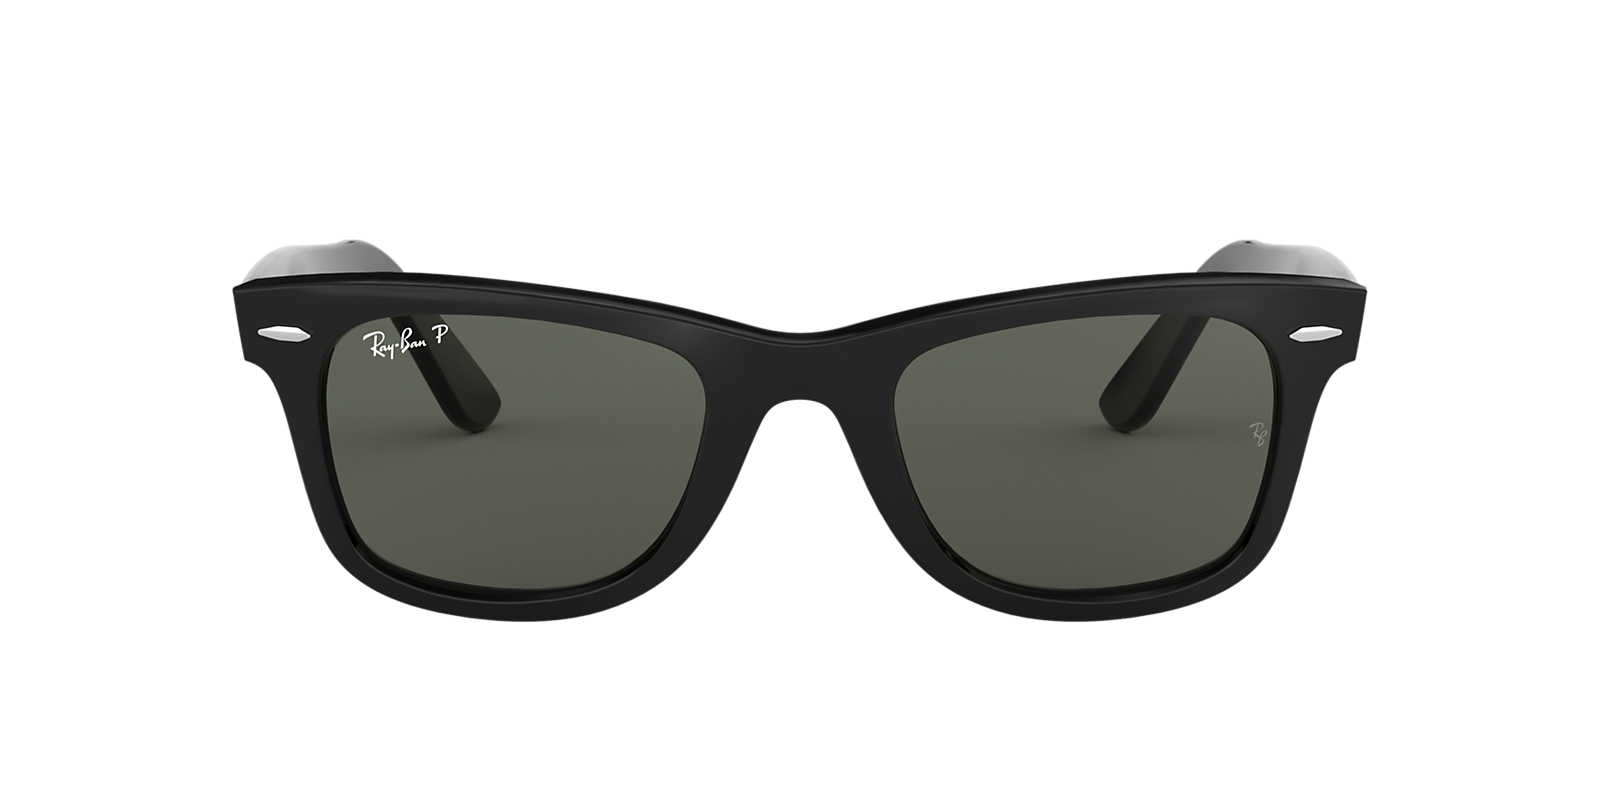 ray ban outlet facebook  rb2140 50 original wayfarer rb2140 50 original wayfarer · ray ban